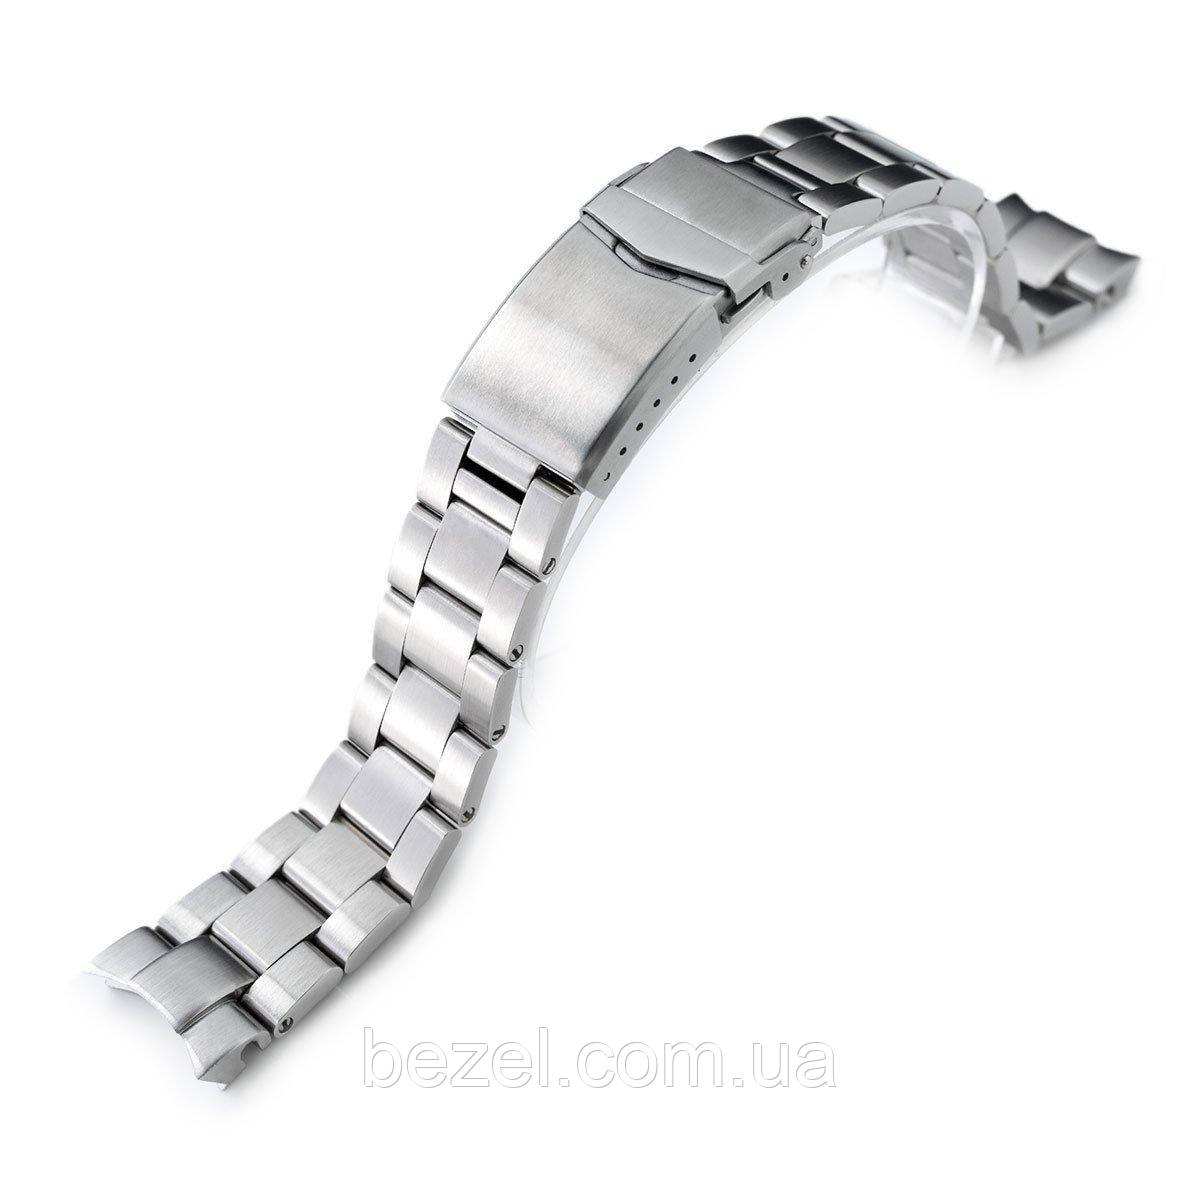 20mm Super 3D Oyster watch band for Seiko Alpinist SARB017, Brushed, V-Clasp Button Double Lock